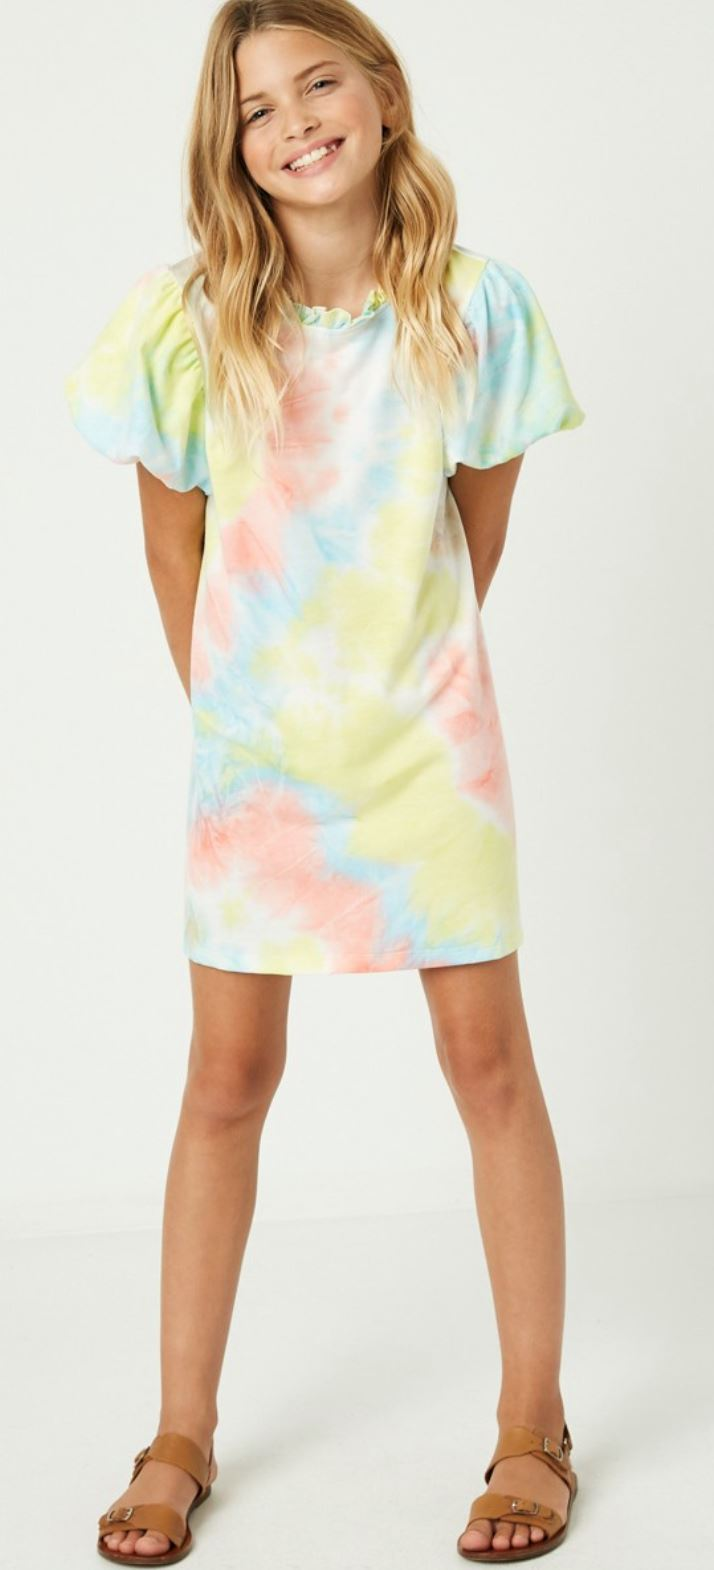 Tween Tie Dye Dress Hayden Los Angeles